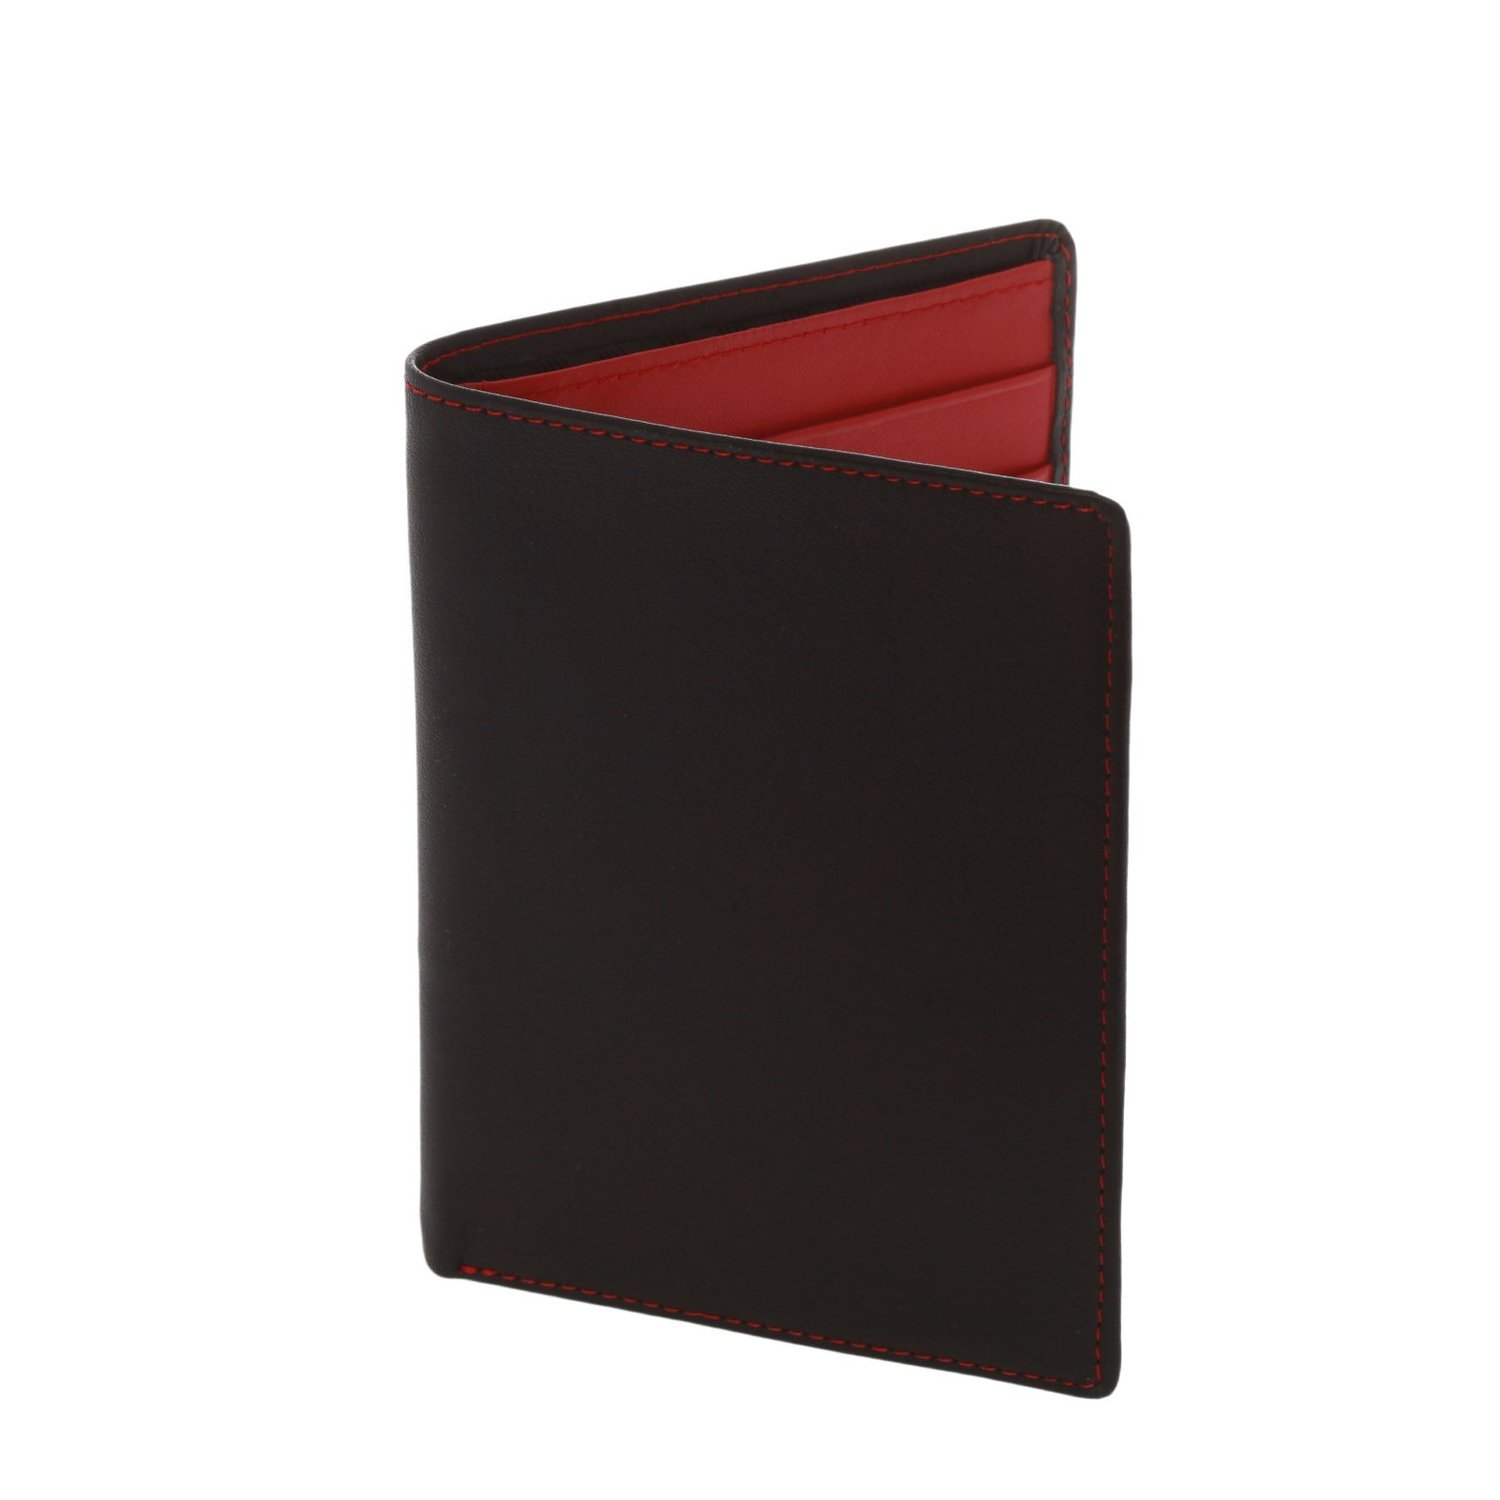 Royce Leather RFID Blocking Passport Currency Wallet Black/Red